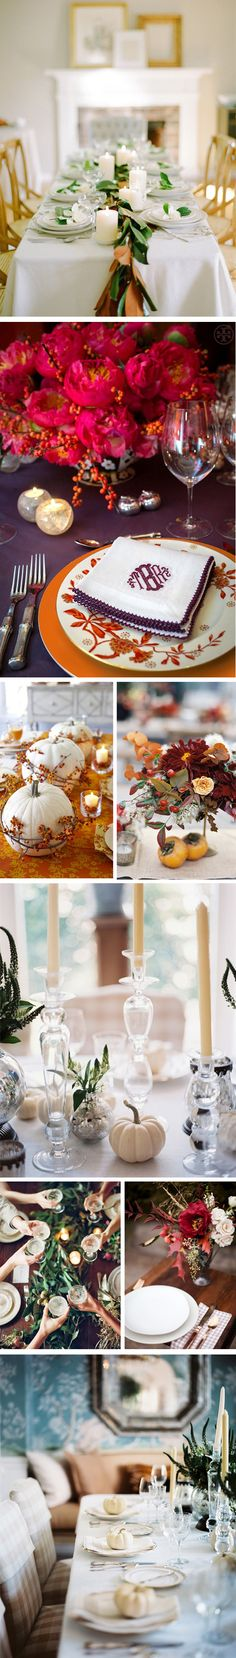 thanksgiving tablescape - wrap fresh bittersweet around white pumpkins.